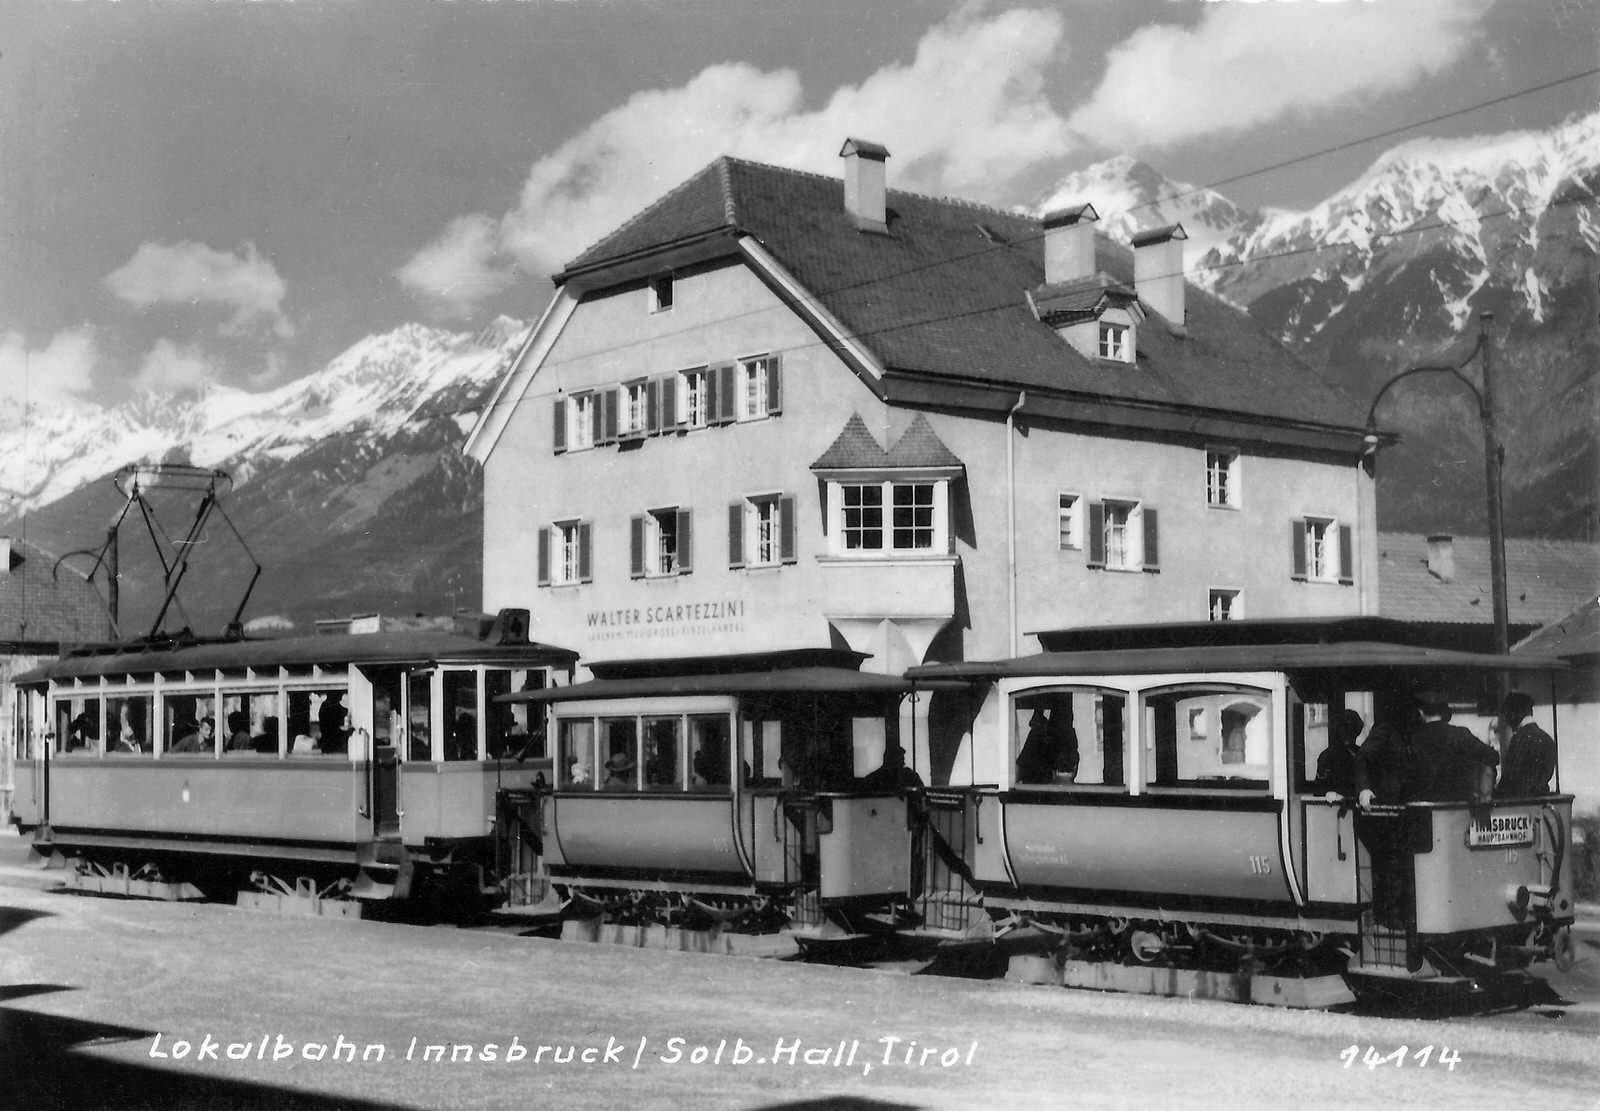 Hall in tirol private partnervermittlung: Private ficktreffen 10 cast